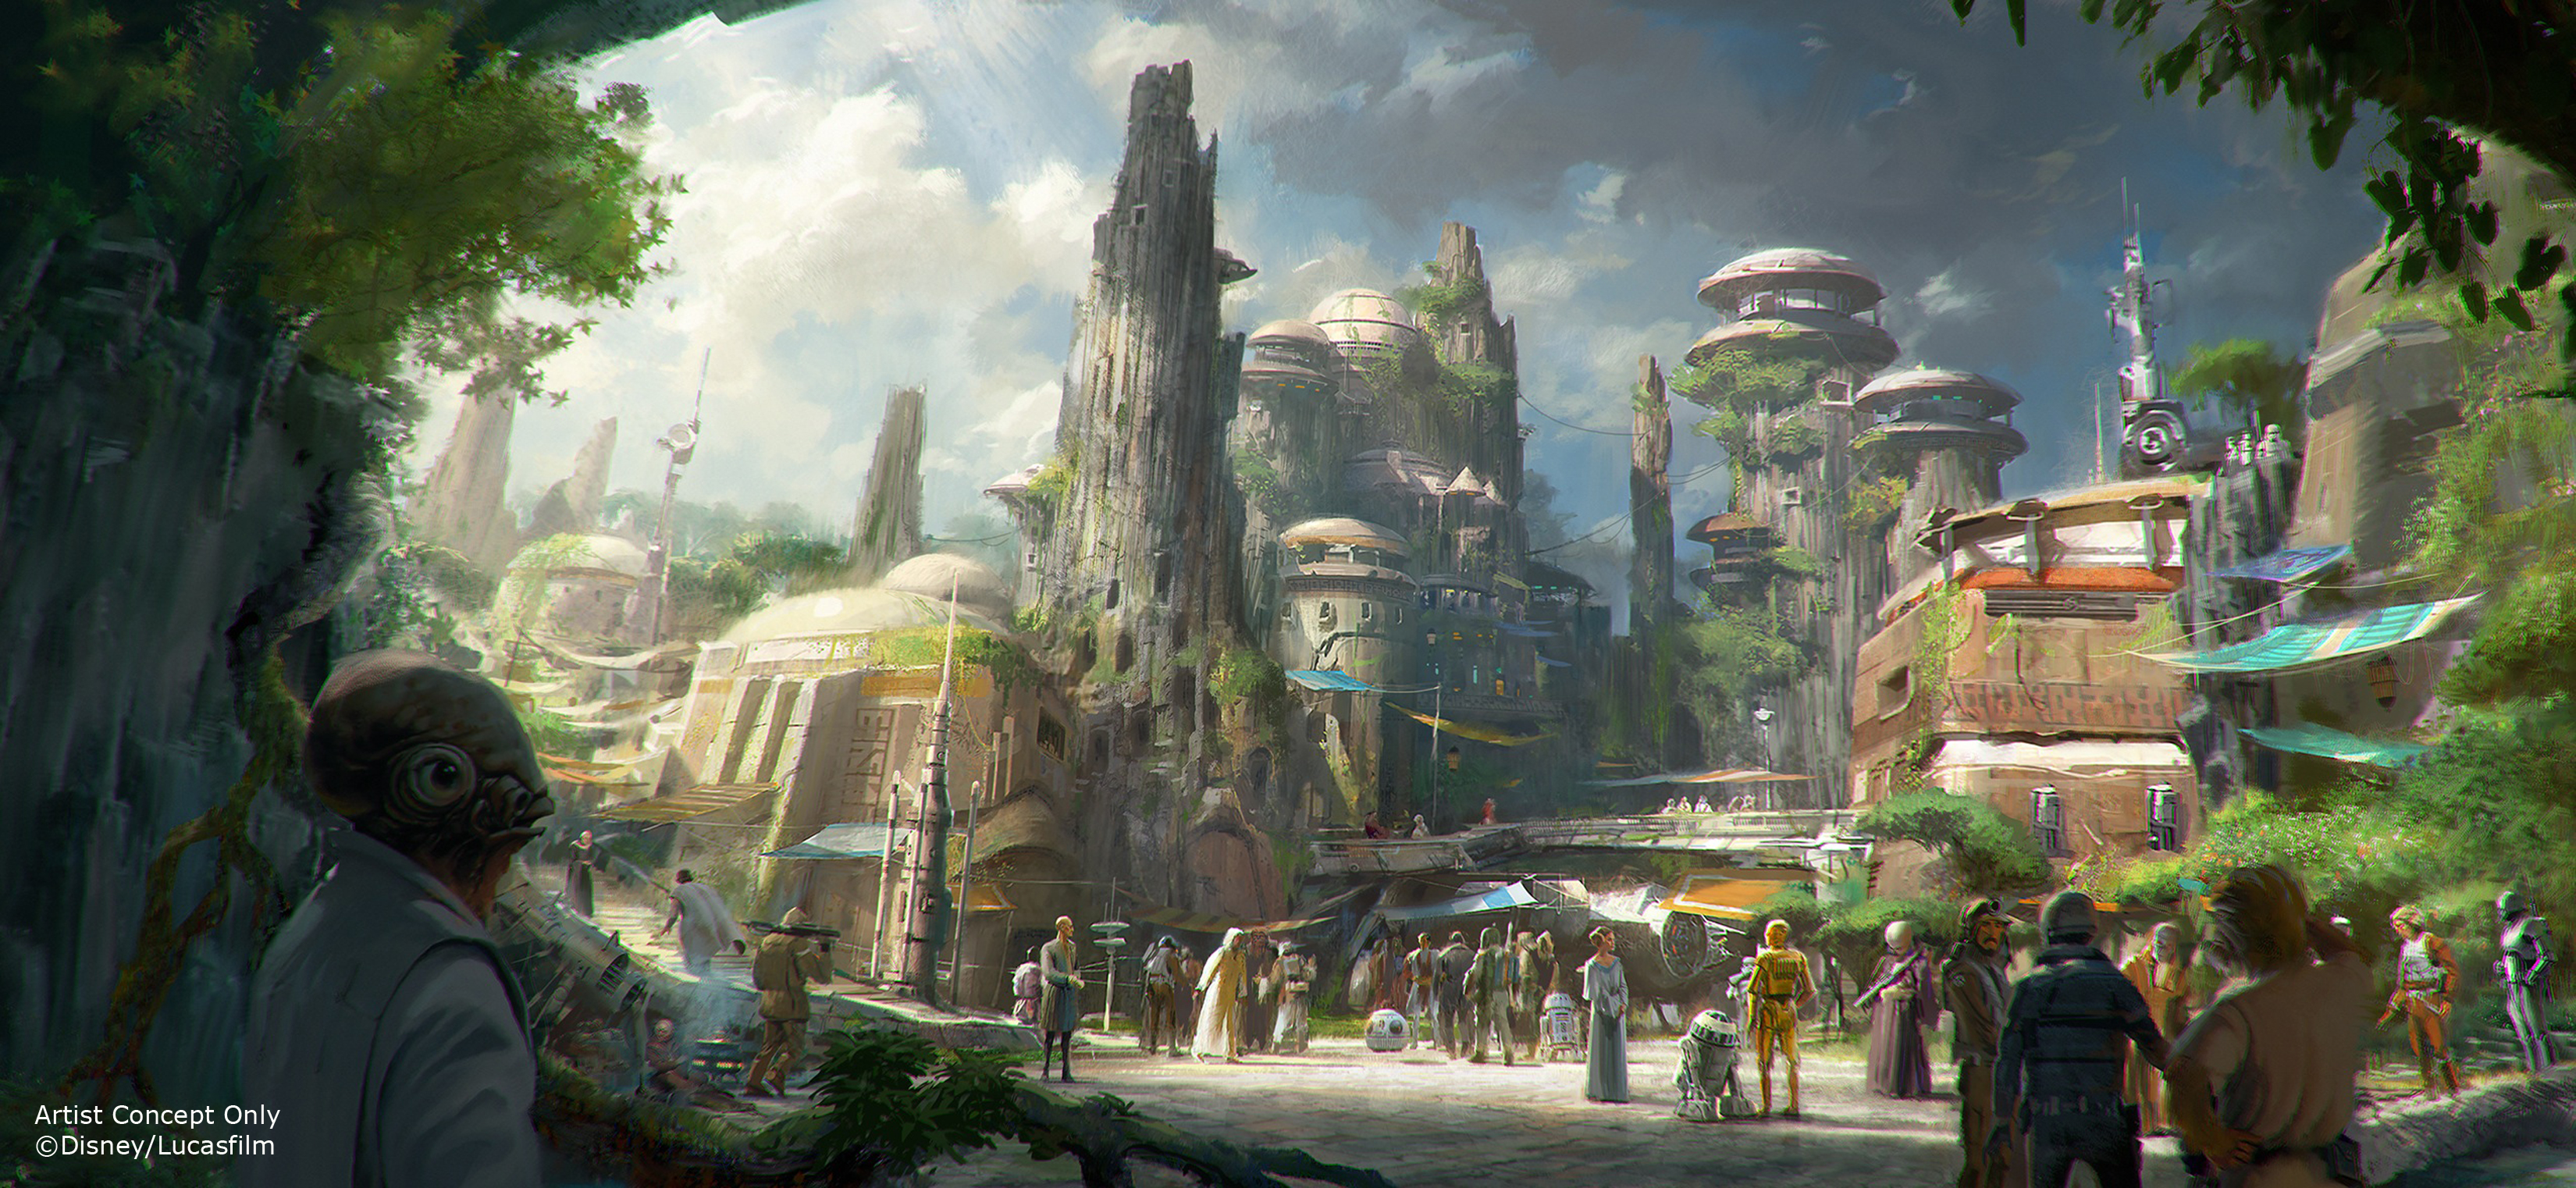 Star Wars themed land concept art